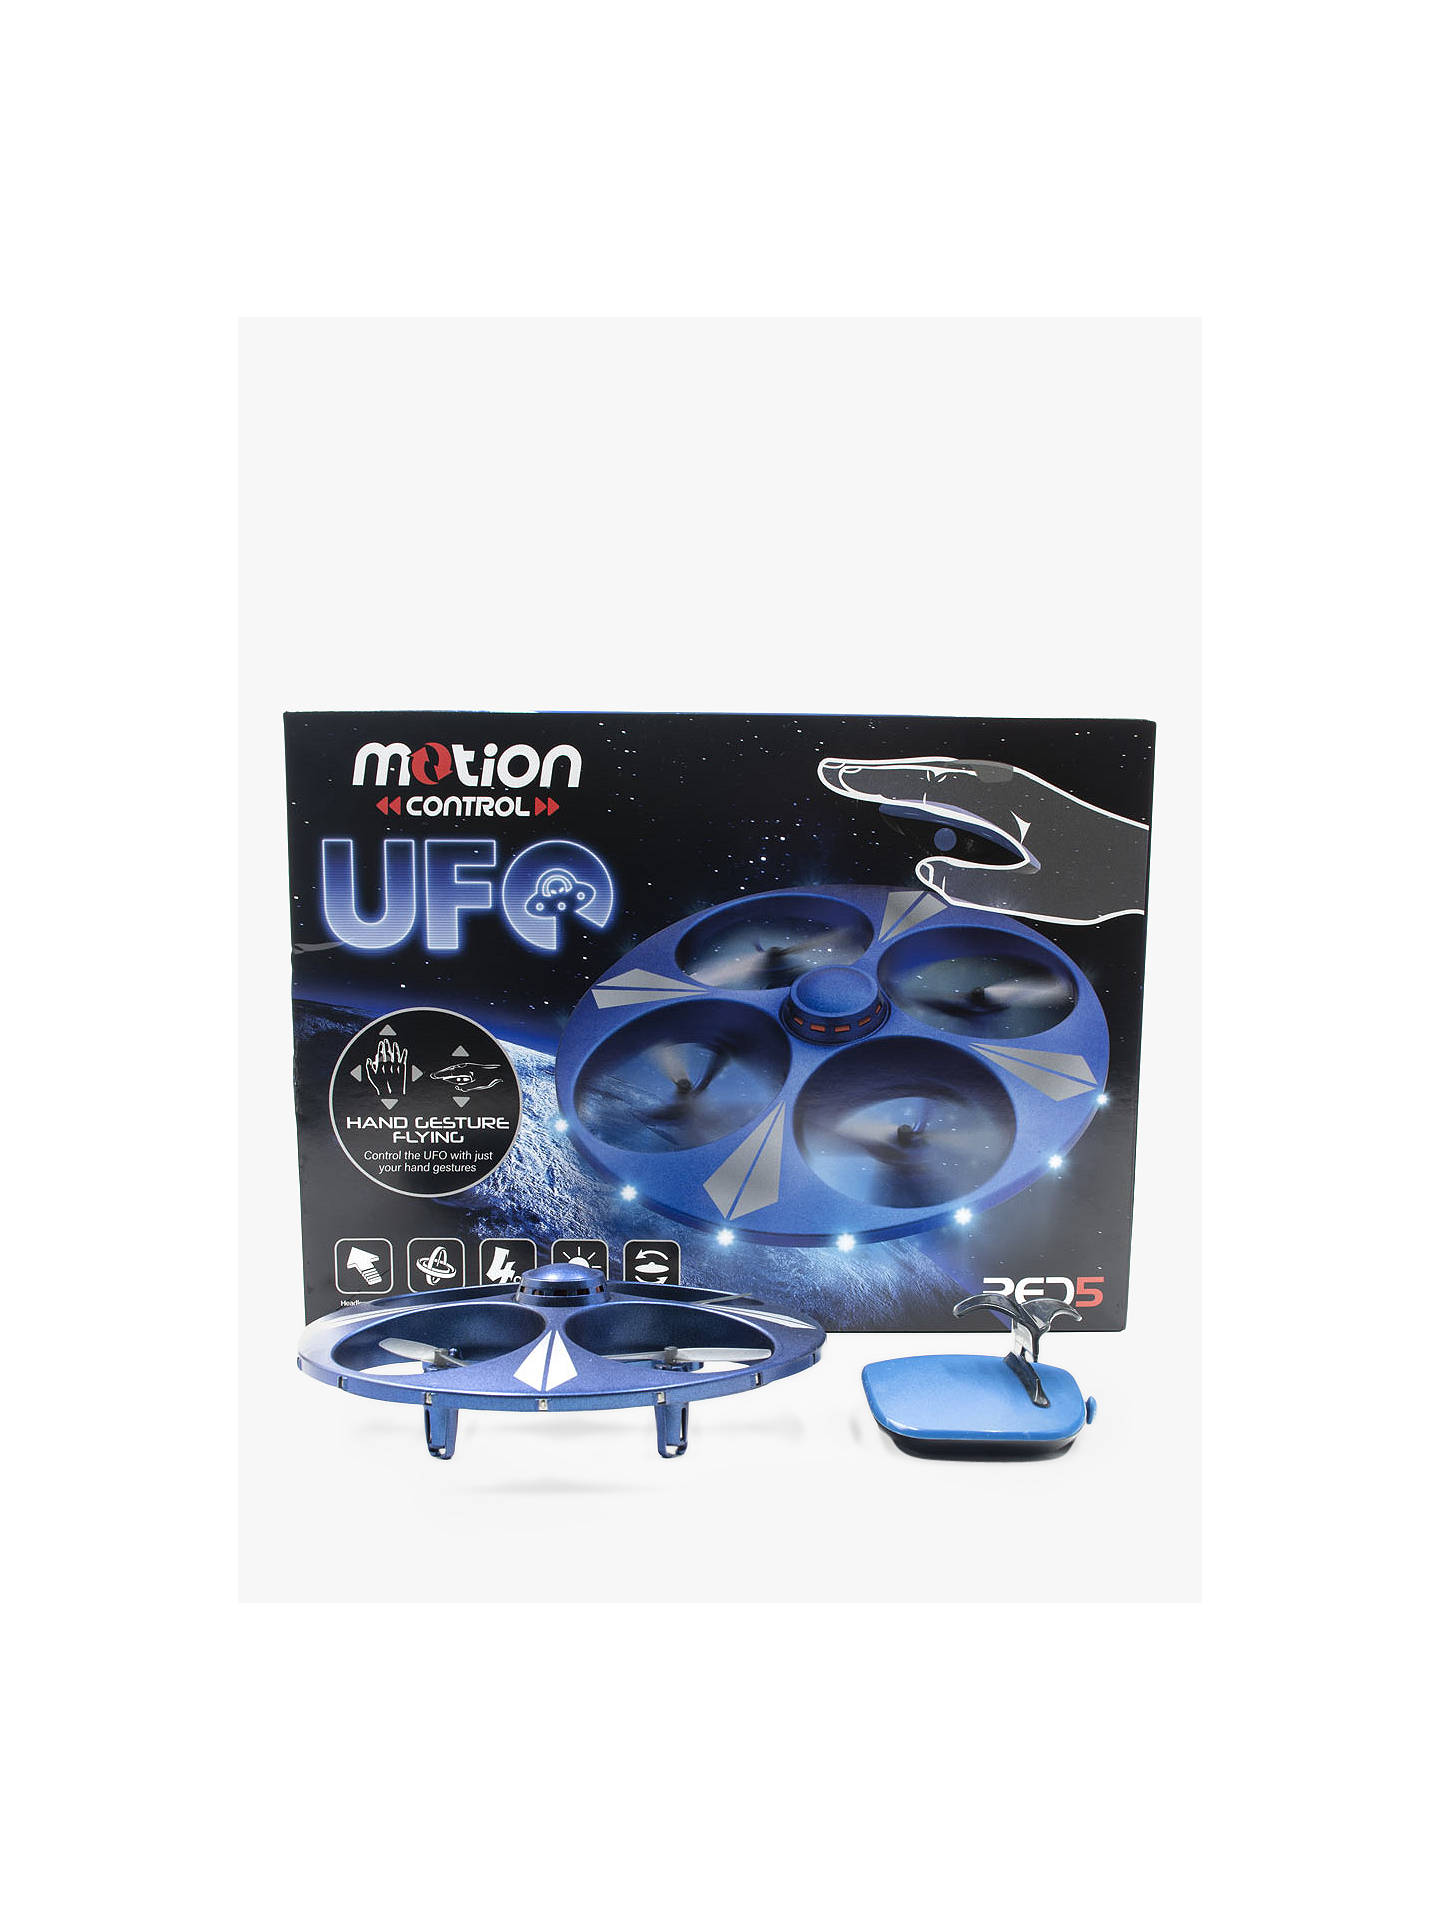 BuyRED5 Light Up Motion UFO Drone Online at johnlewis.com